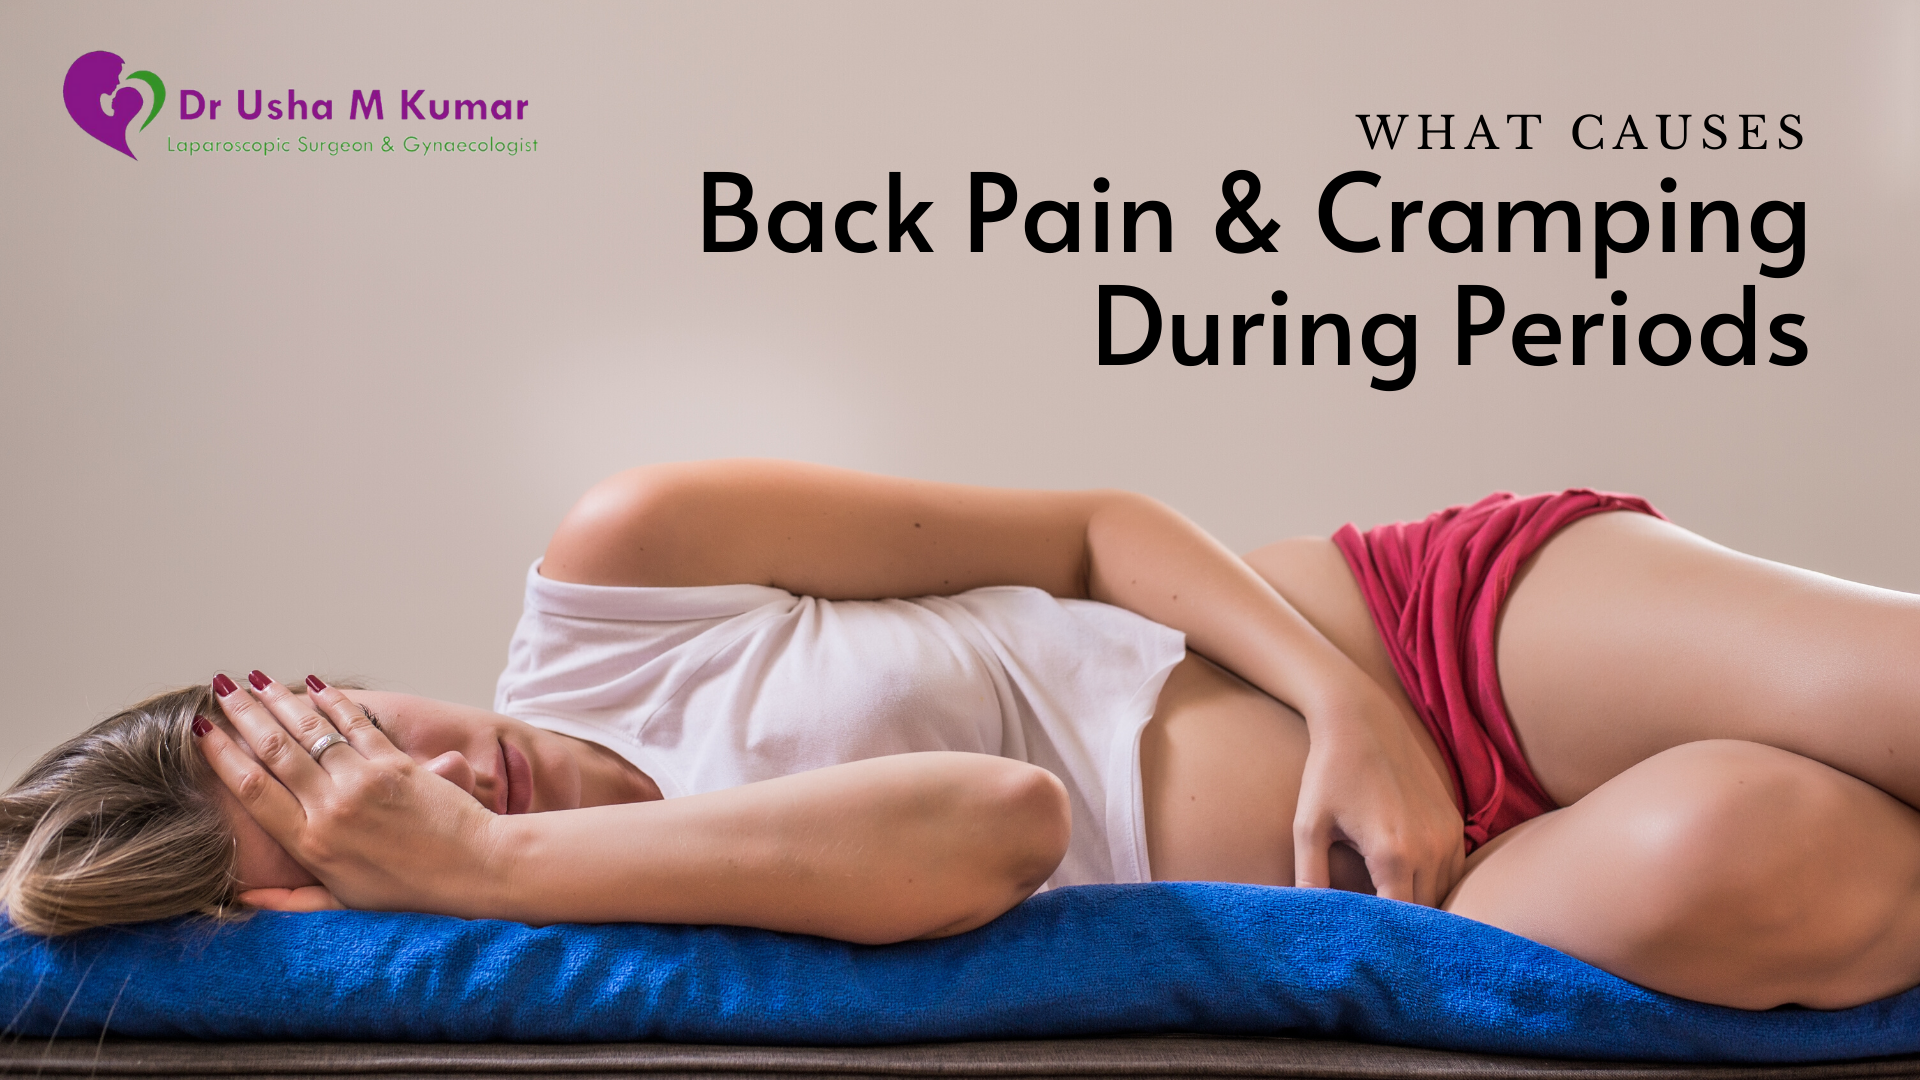 Best Gynaecologist in Delhi - Period Back Pain and Cramping